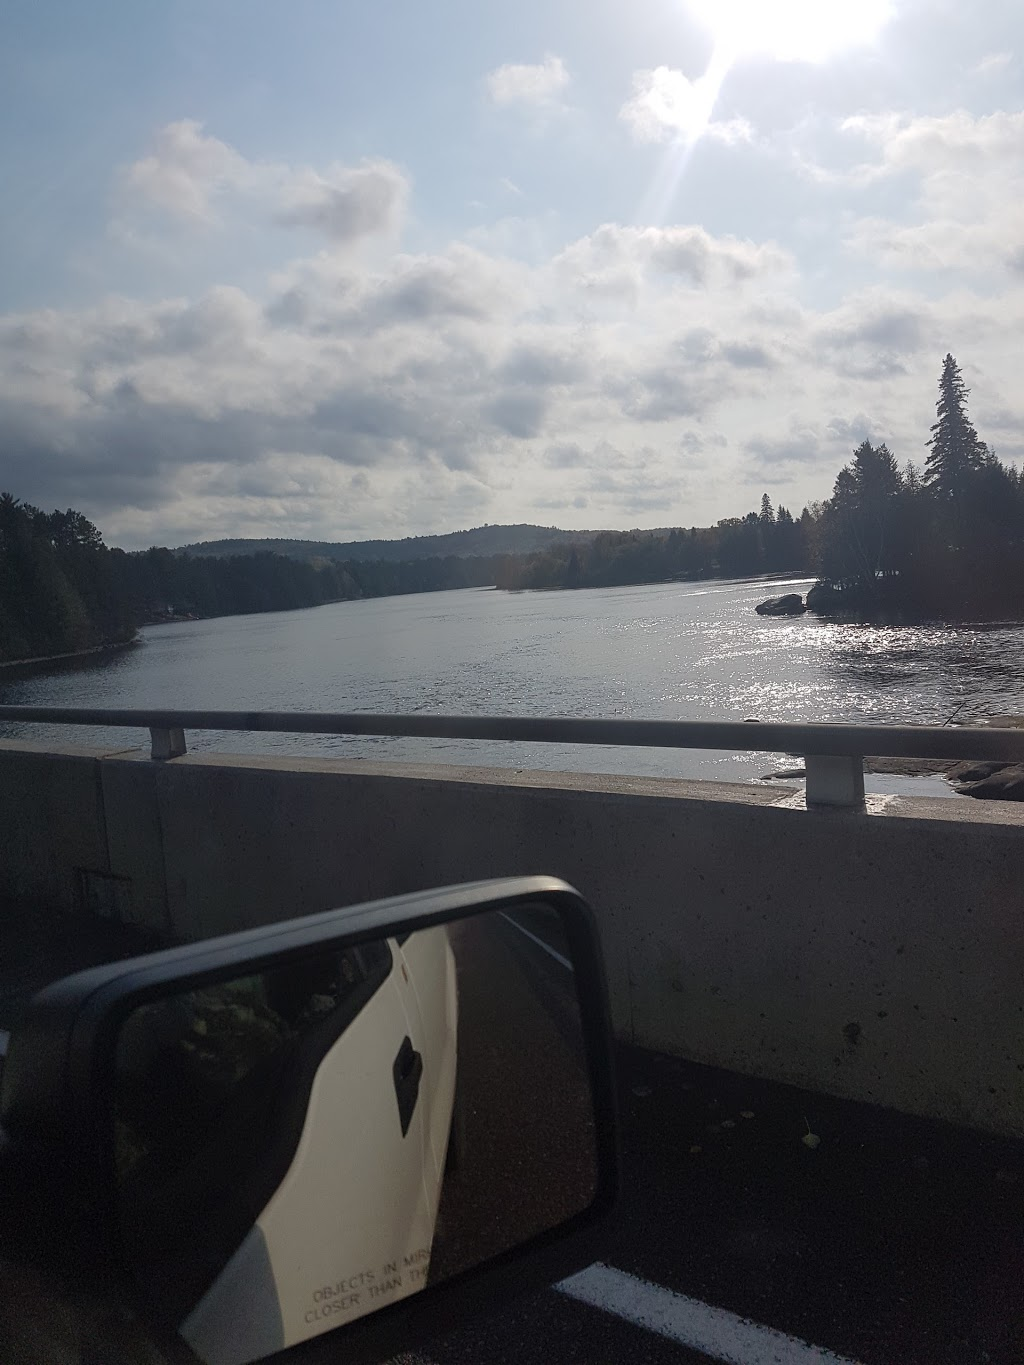 Greater Madawaska Canoe Rentals | point of interest | 25775 Hwy 41, Griffith, ON K0J 2R0, Canada | 6133332240 OR +1 613-333-2240